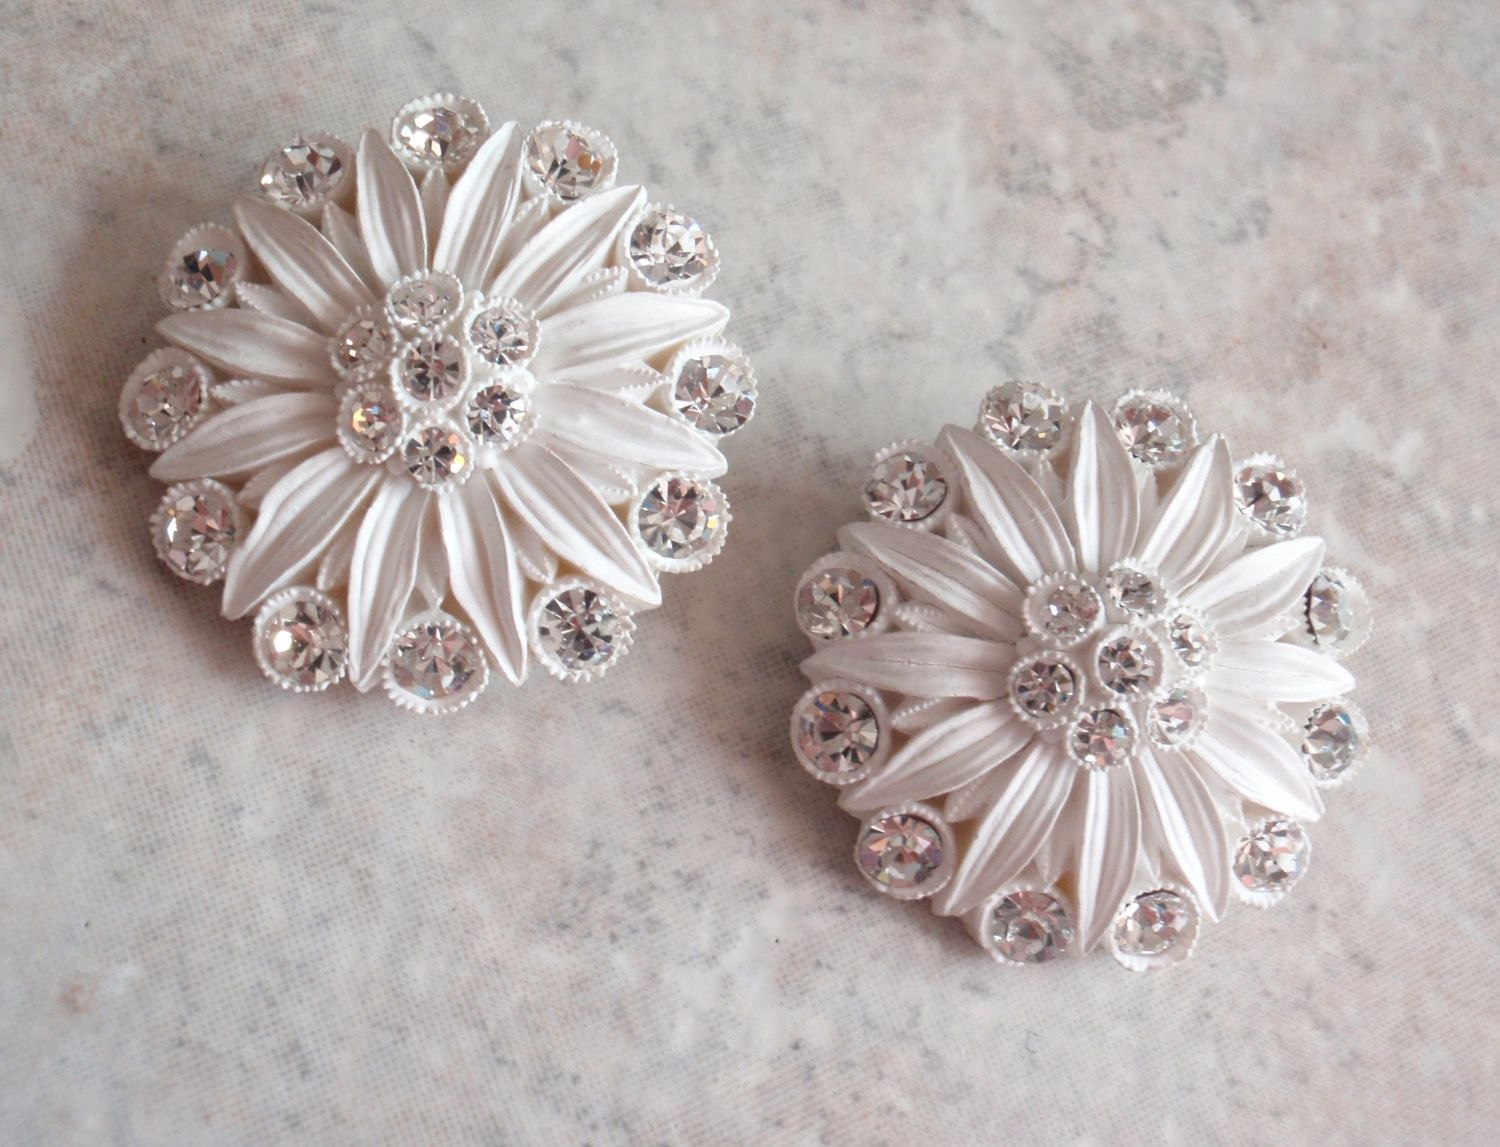 Celluloid Rhinestone Earrings White Clip On Large Round Floral Flower Vintage 030515SC by cutterstone on Etsy